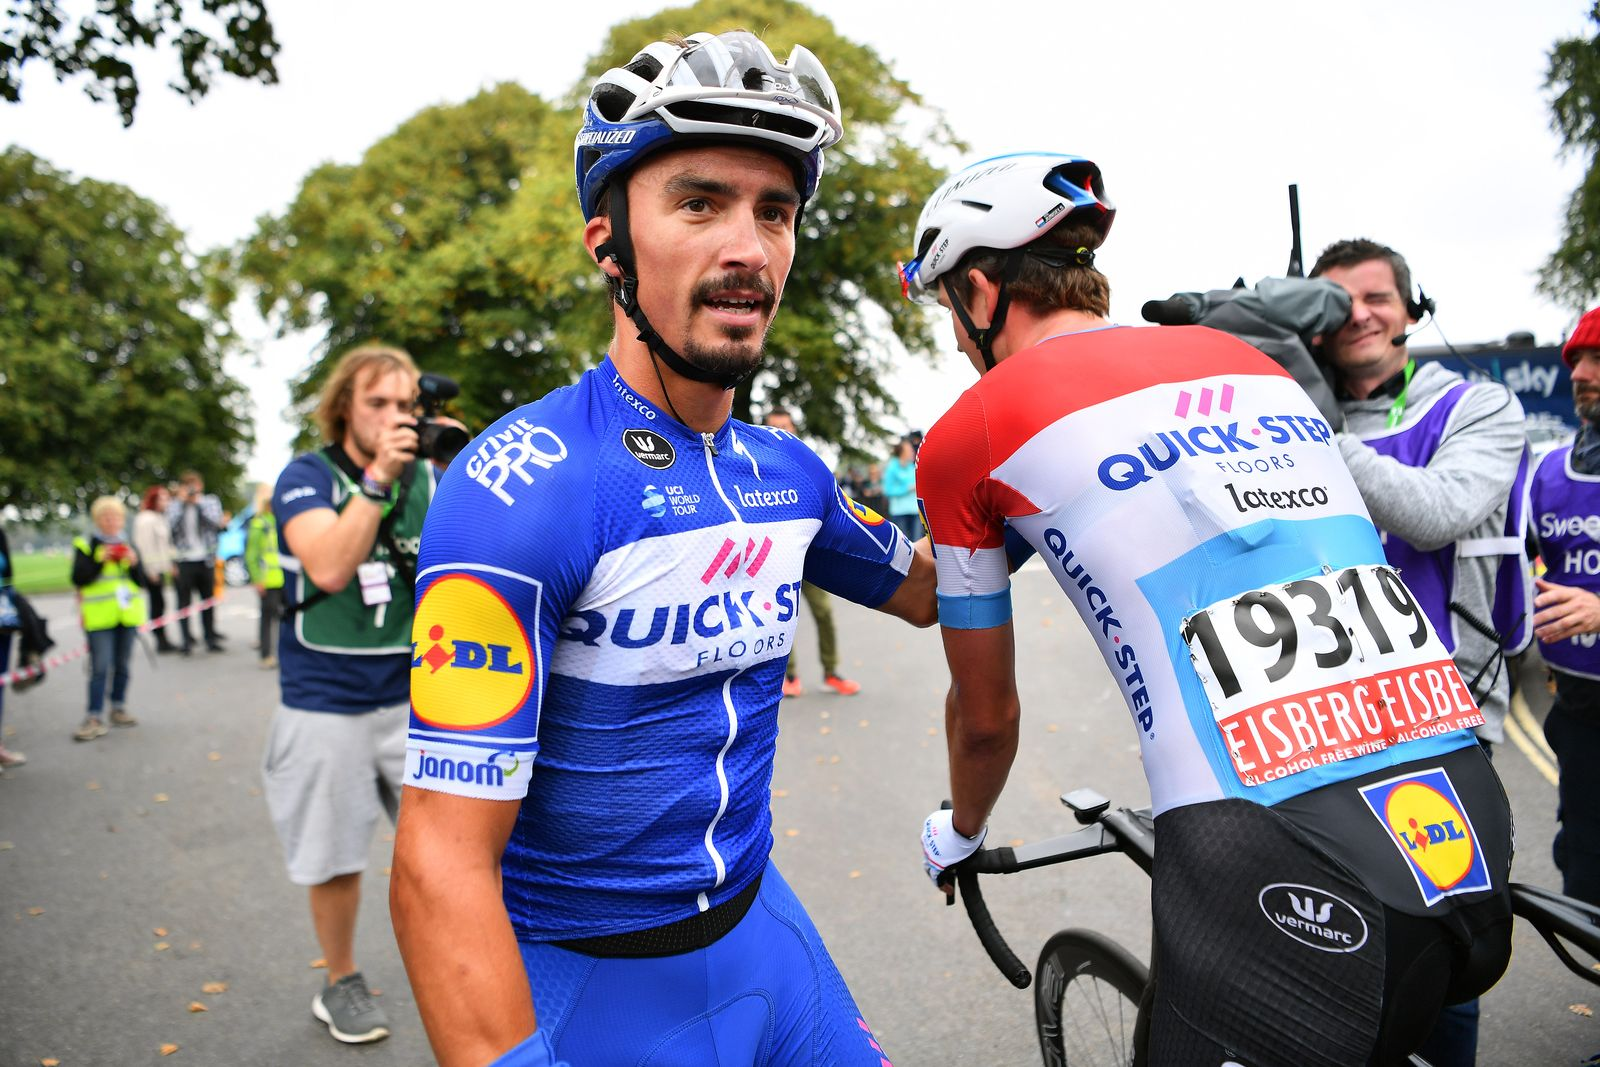 Le coureur cycliste Français Julian Alaphilippe. | Photo : Getty Images